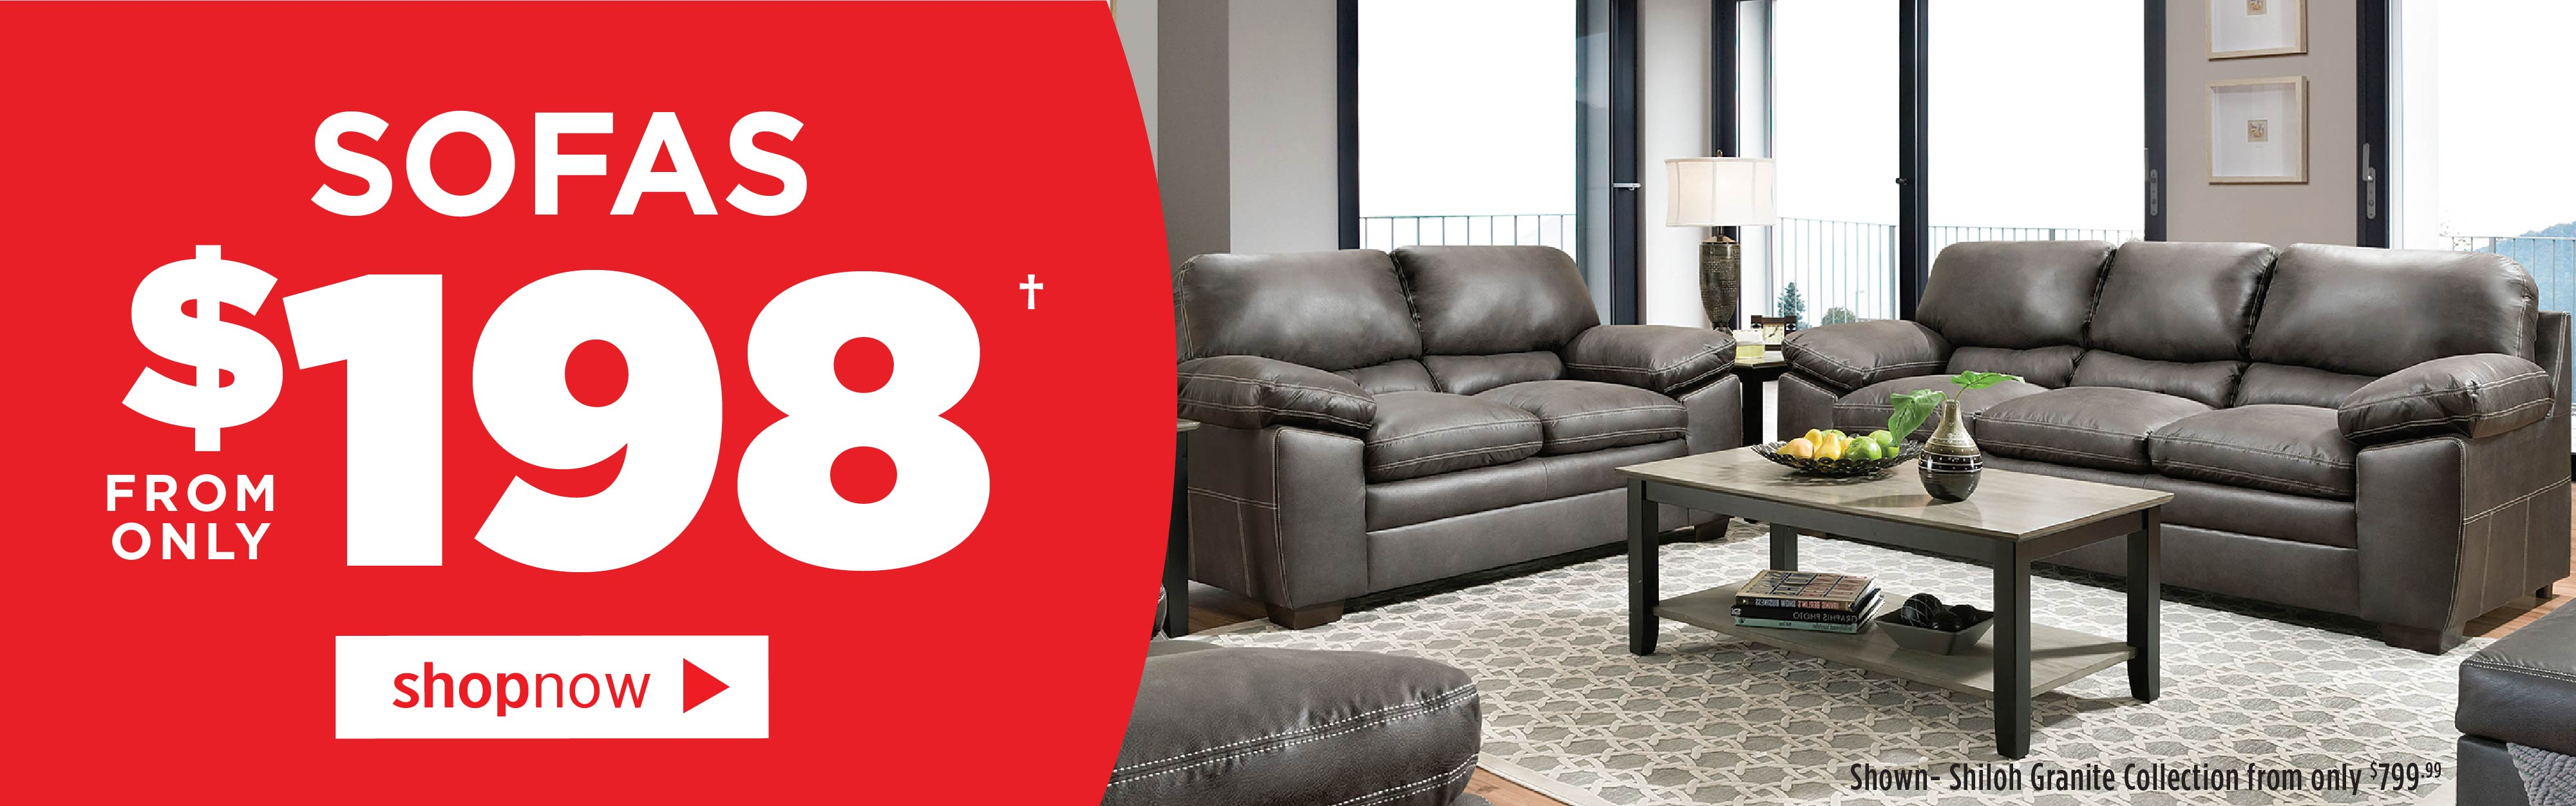 Sofas from only $198!